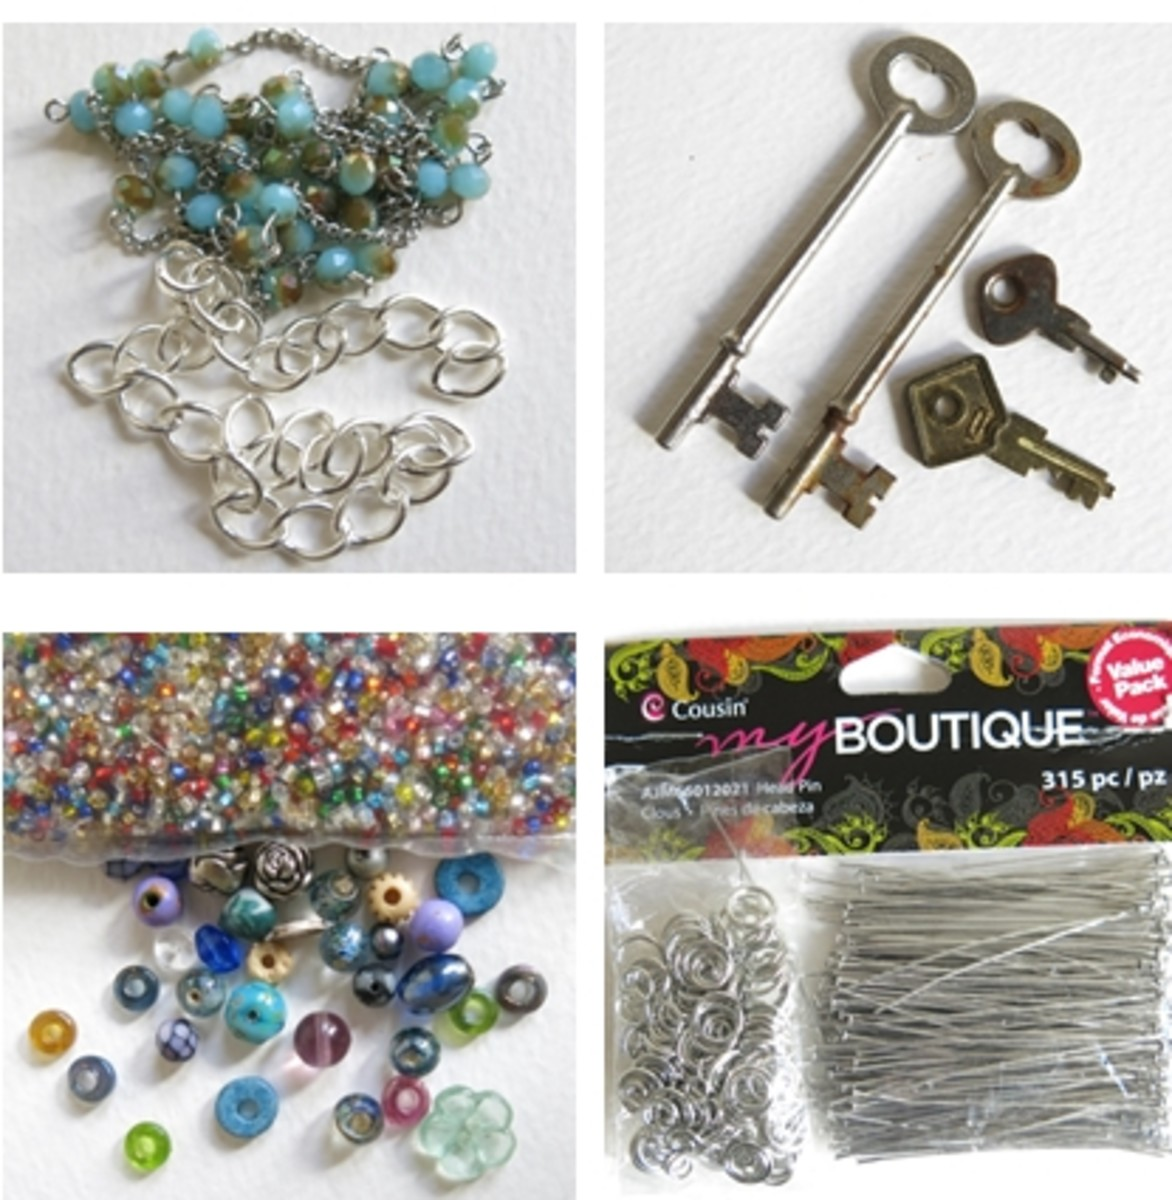 Materials for making a skeleton key necklace with beads